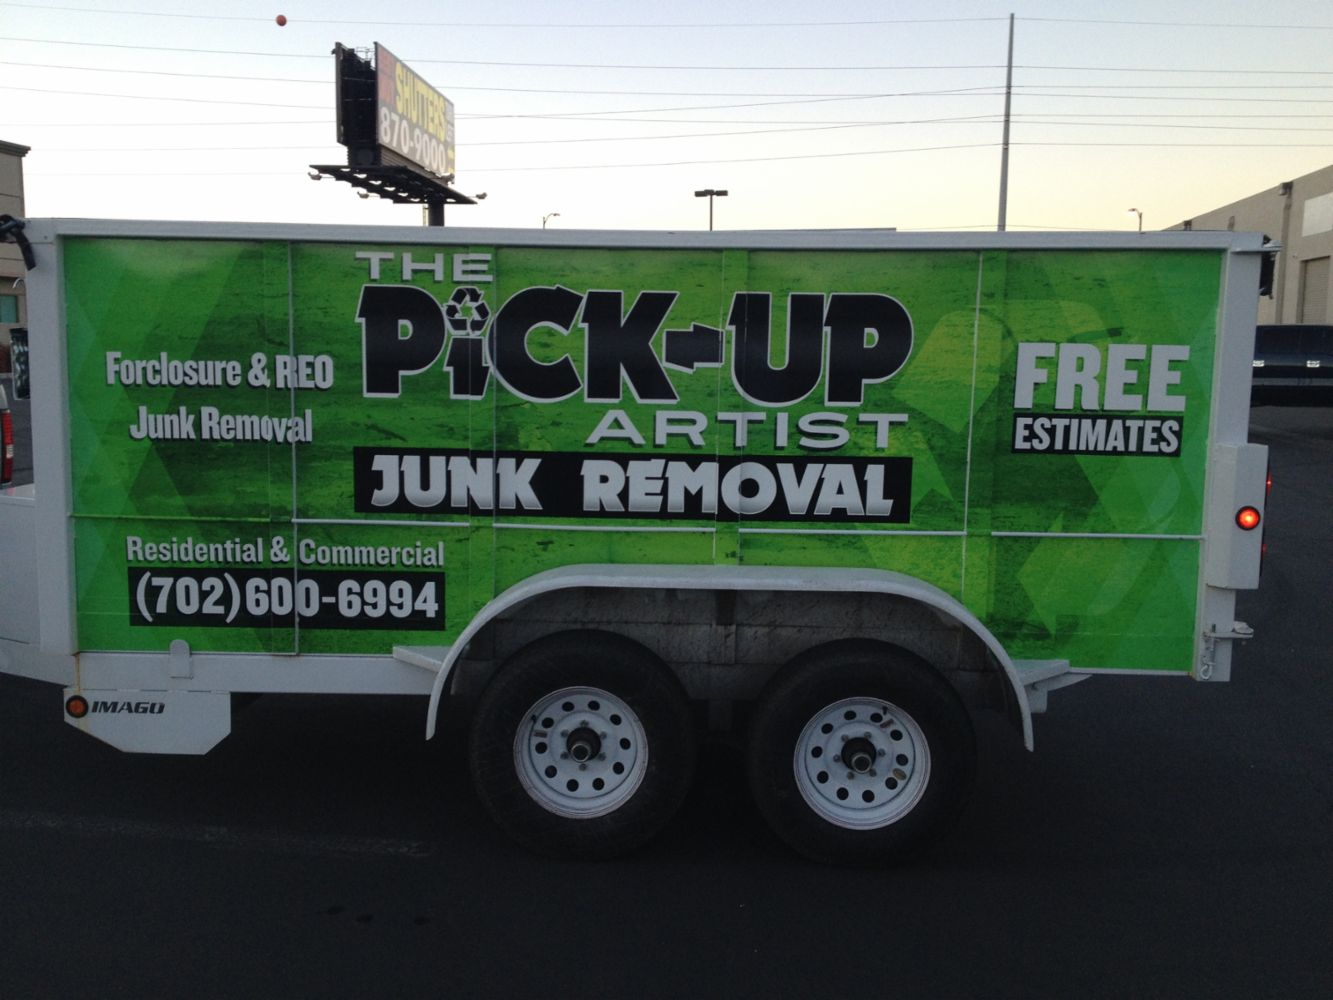 Junk Removal in Las Vegas, NV - The Pick Up Artist Junk Removal